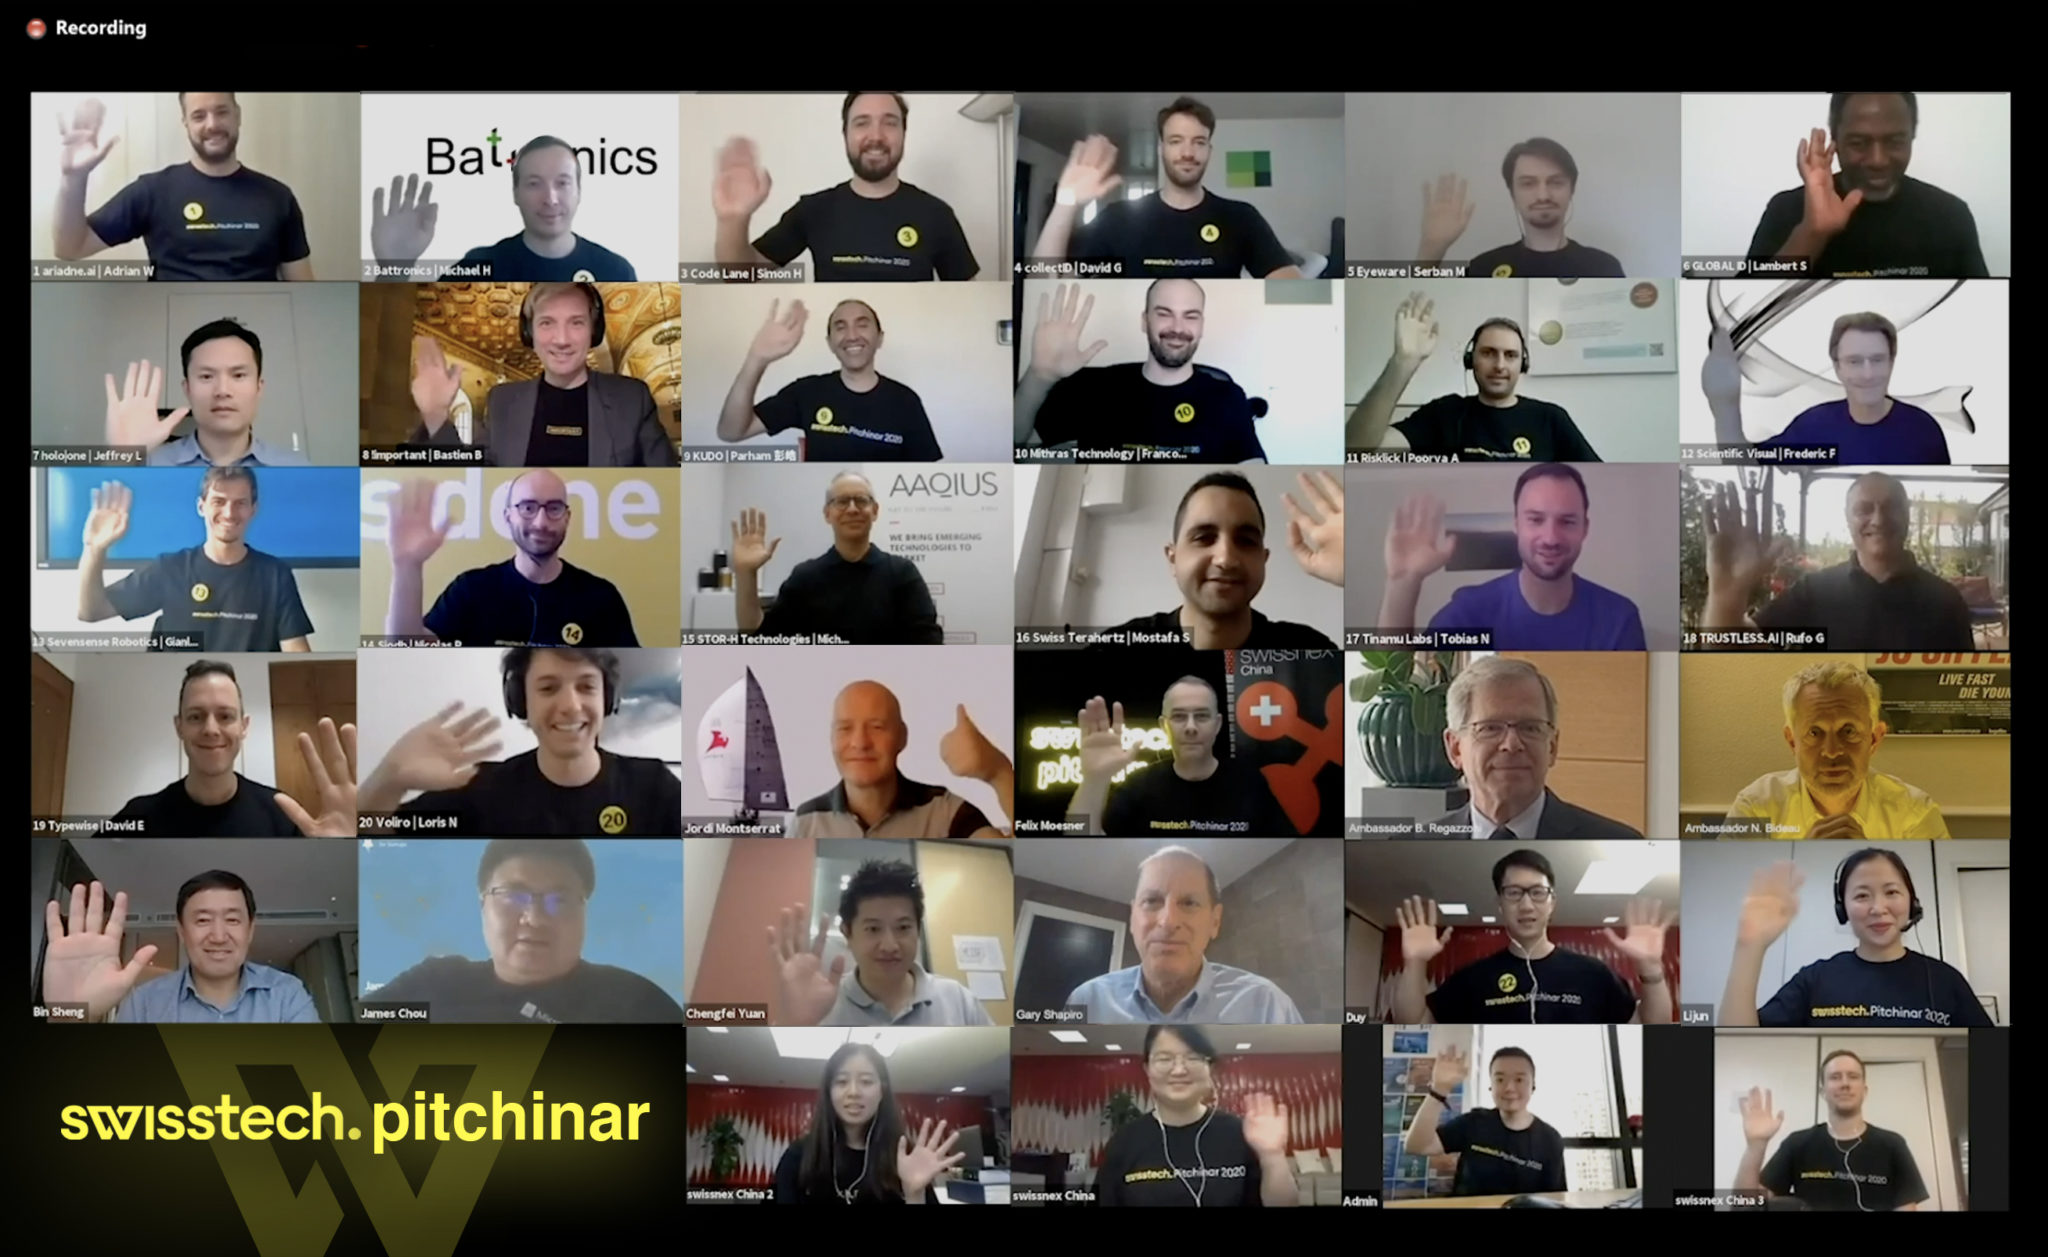 SwissTech Pitchinar showcases the latest innovations in DeepTech via global audience